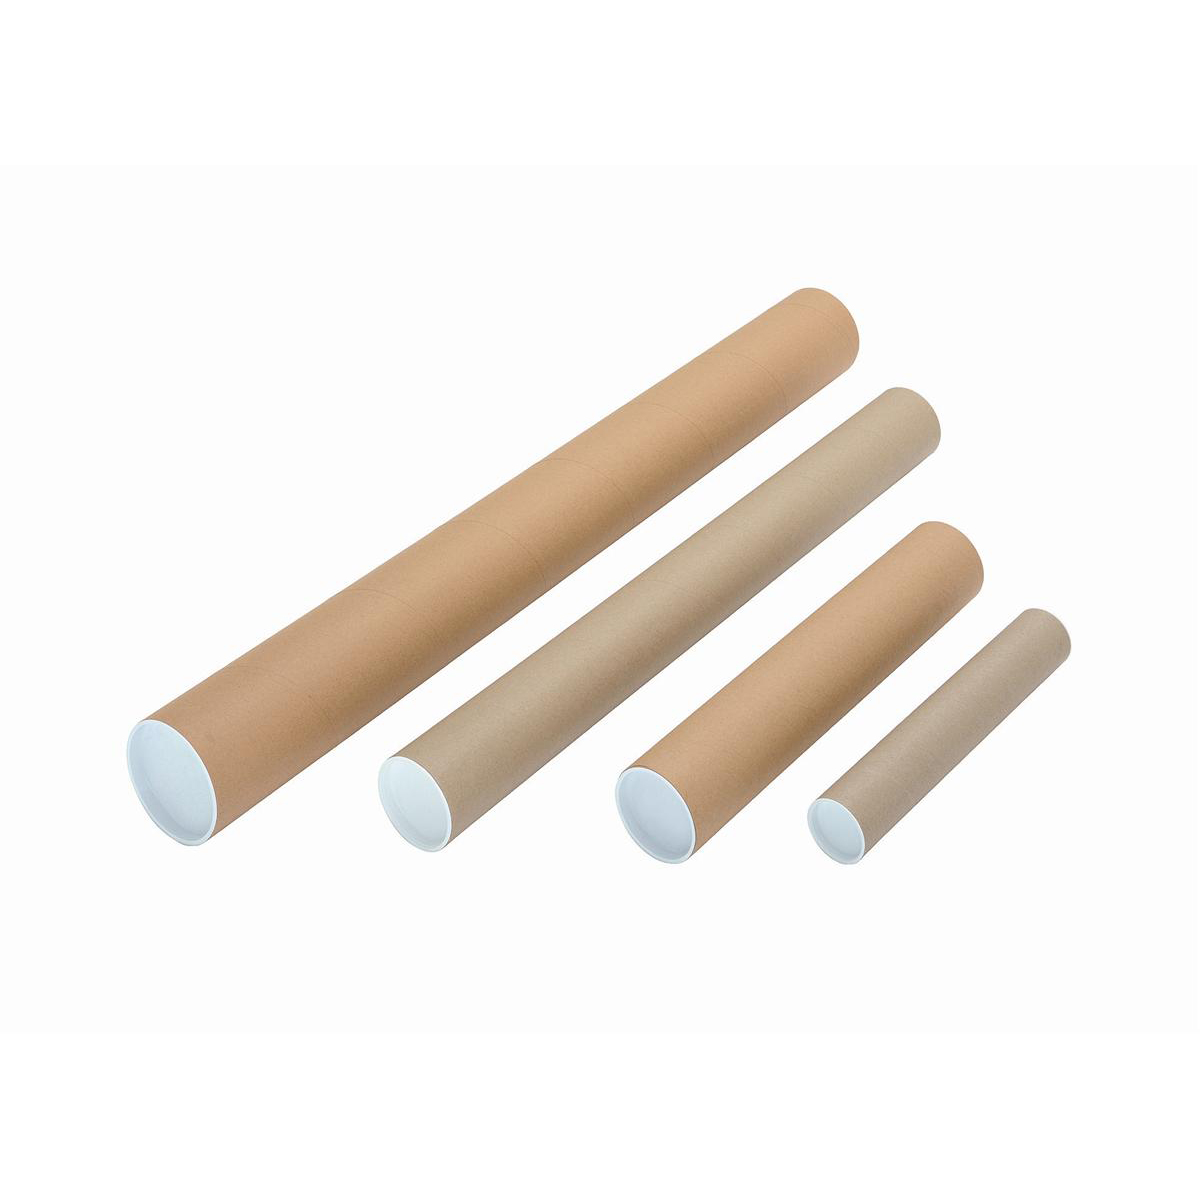 Postal Tube Cardboard with Plastic End Caps A4-A3 L330xDia.50mm RBL10518 Pack 25